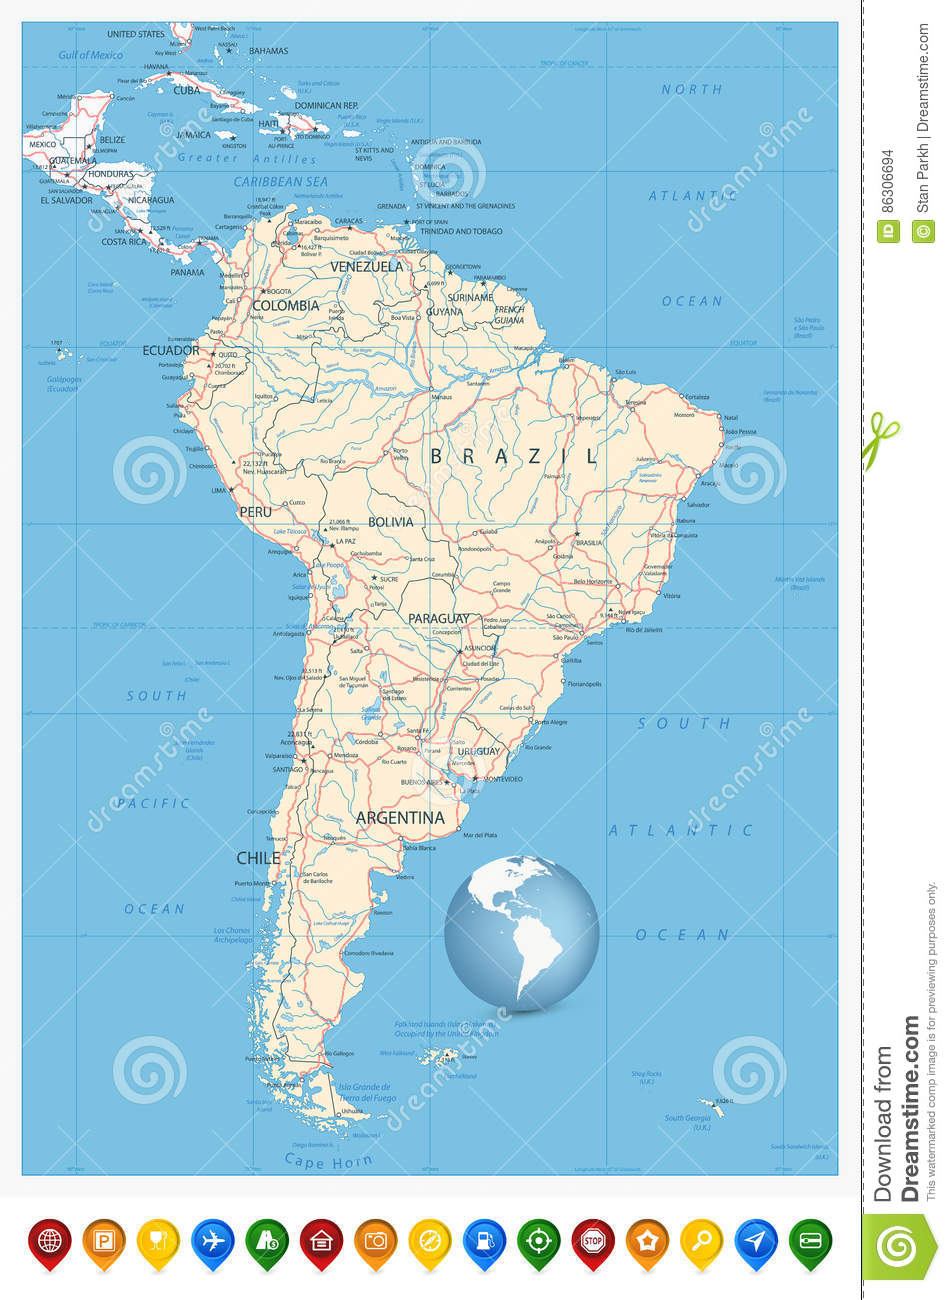 Detailed South America Map And Location Pin Icons Stock Vector